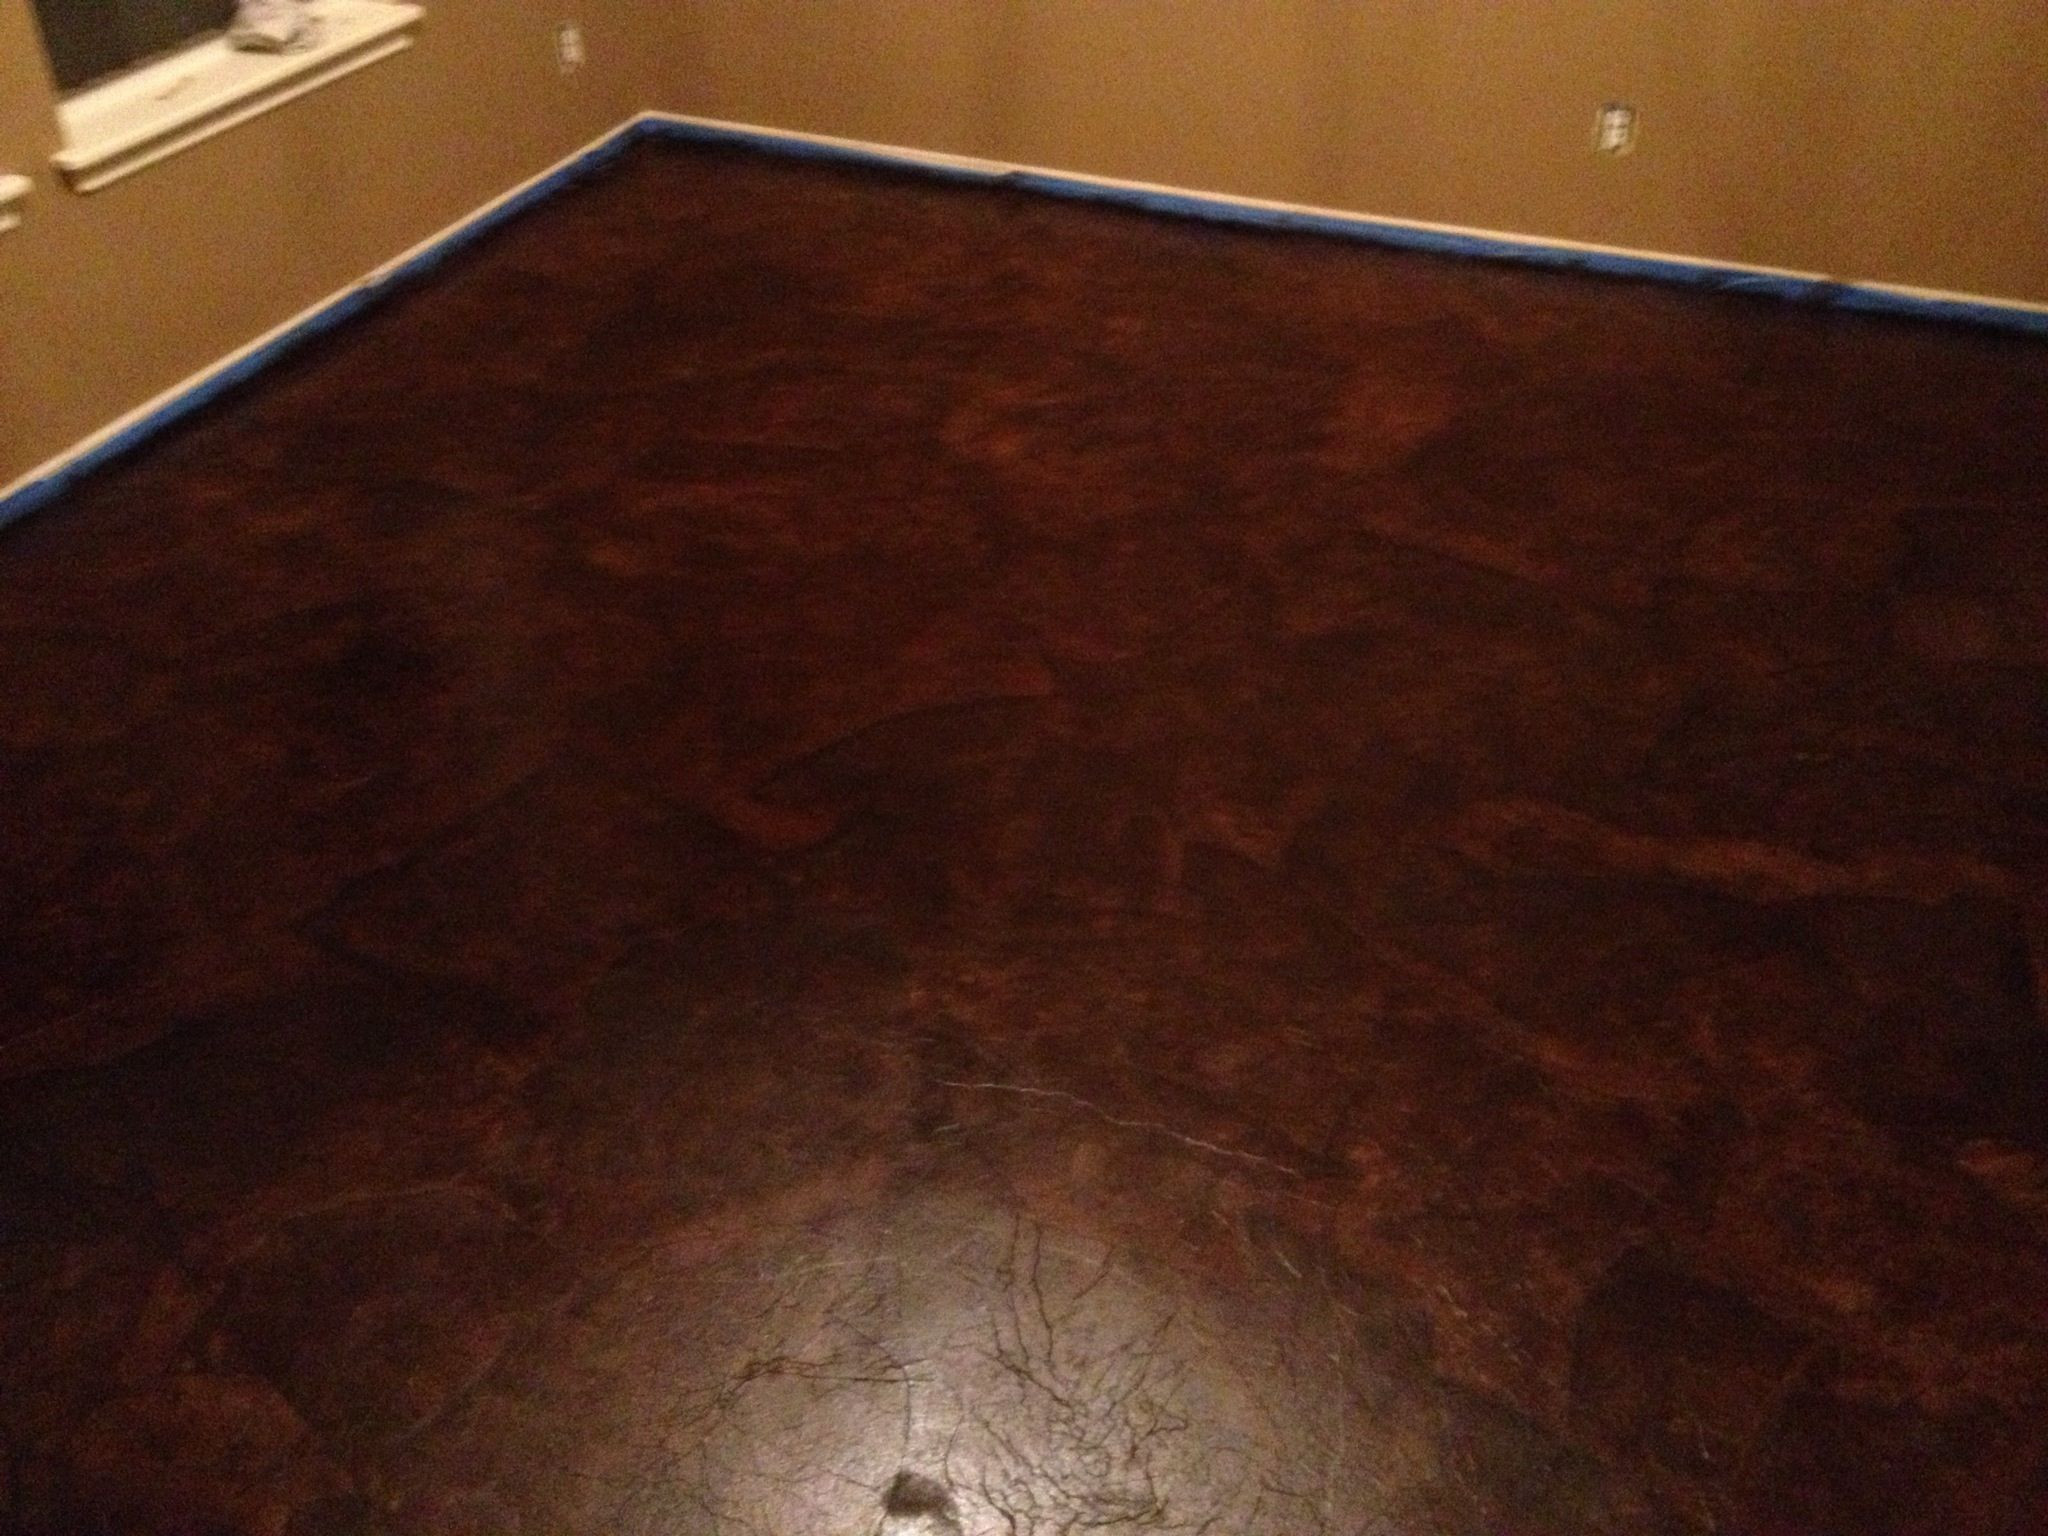 can you glue down hardwood flooring to concrete of diy paper bag floors that look like stained concrete diy brown in brown paper bag stained floors amazing project excellent instructions on how to complete the project